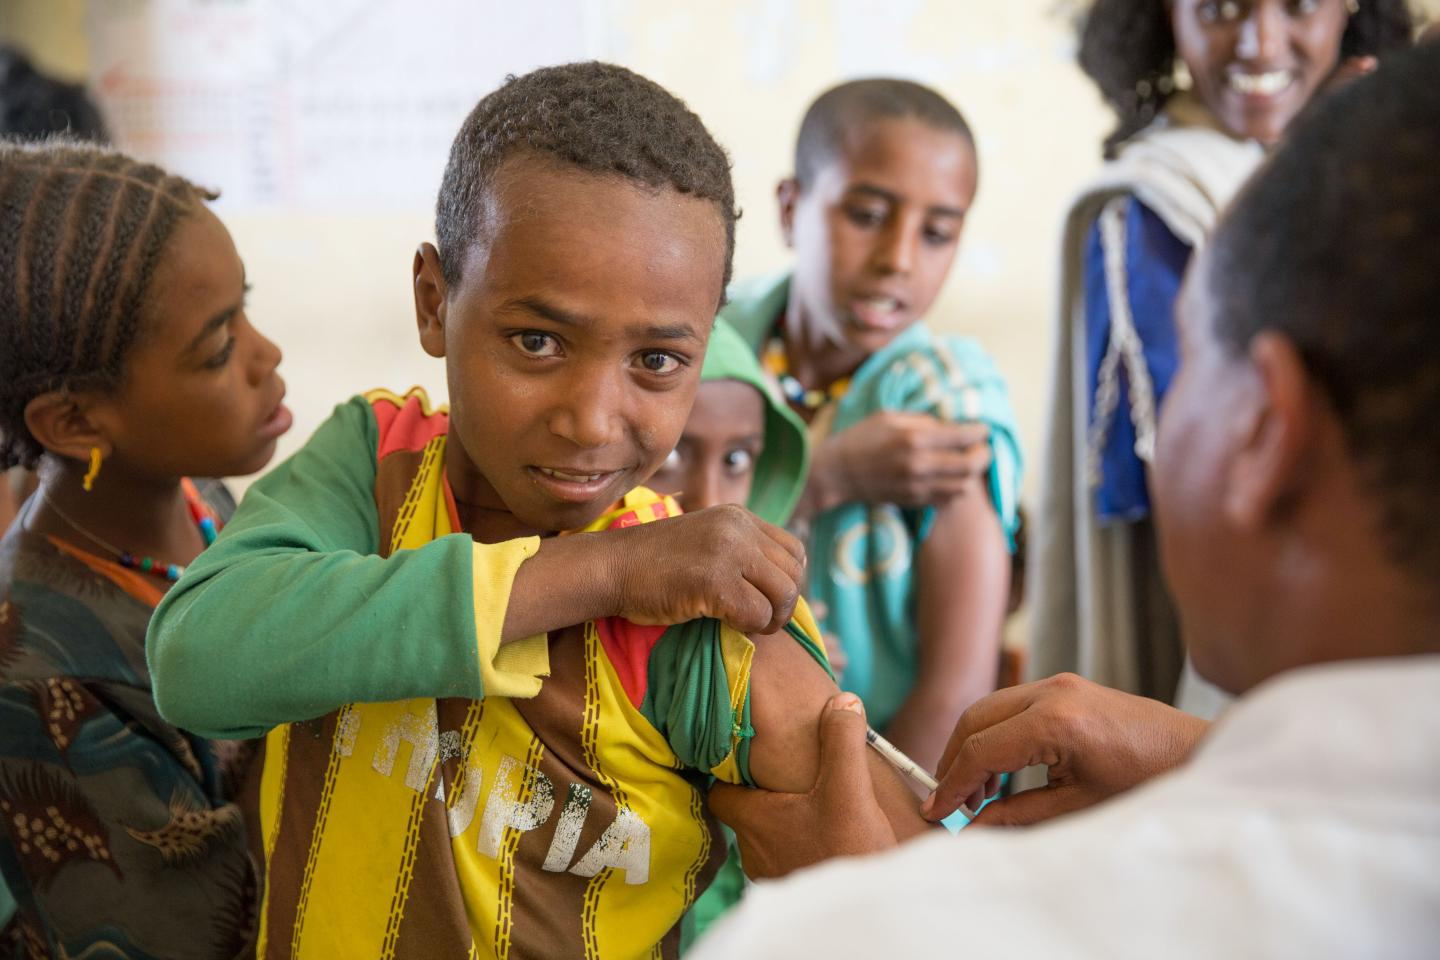 In drought-stricken Ethiopia, stopping measles in its tracks